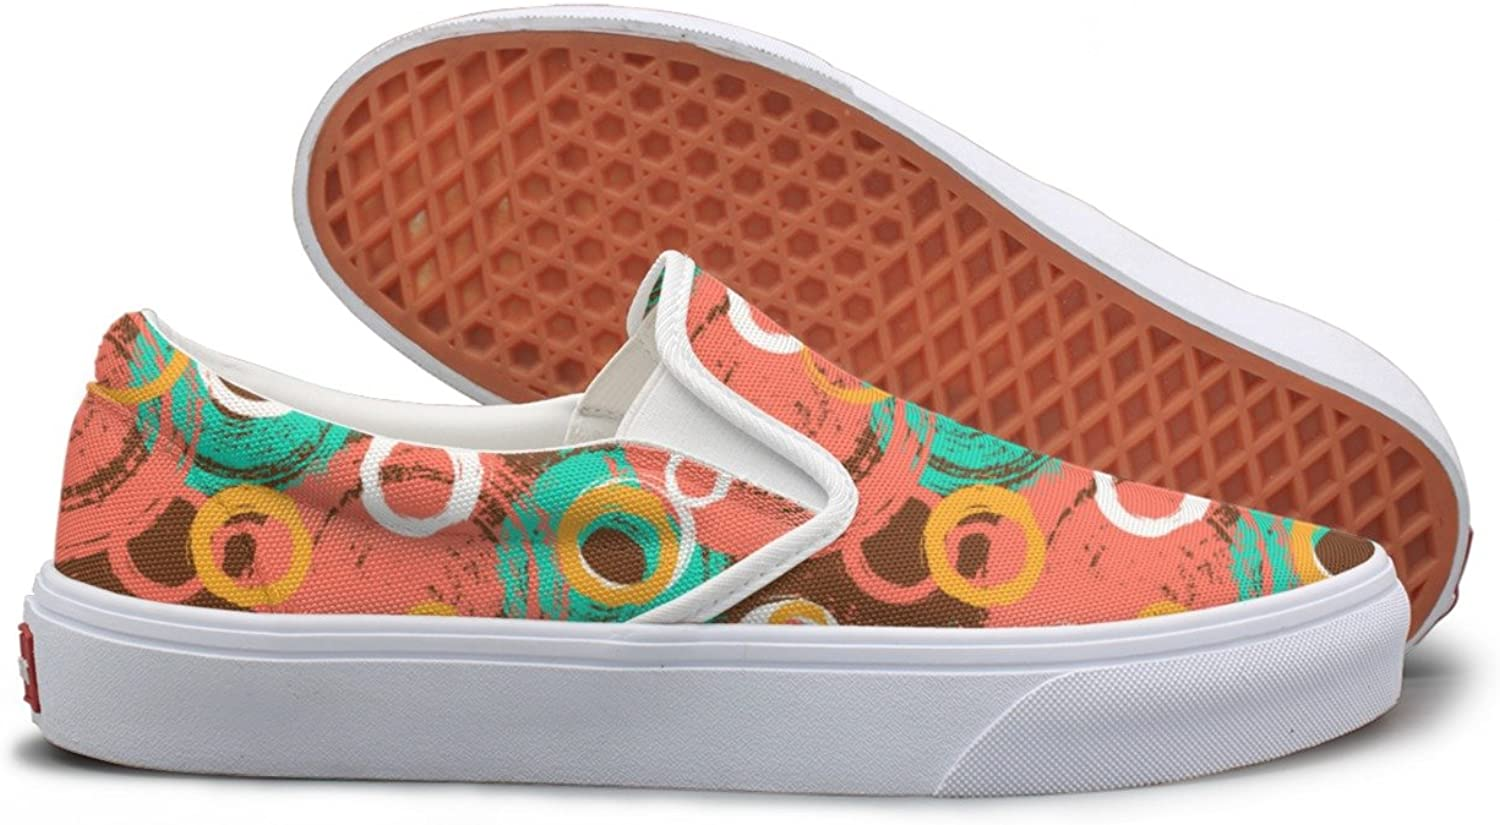 SEERTED Circles and Bubble Graffiti Design Running Sneakers for Women